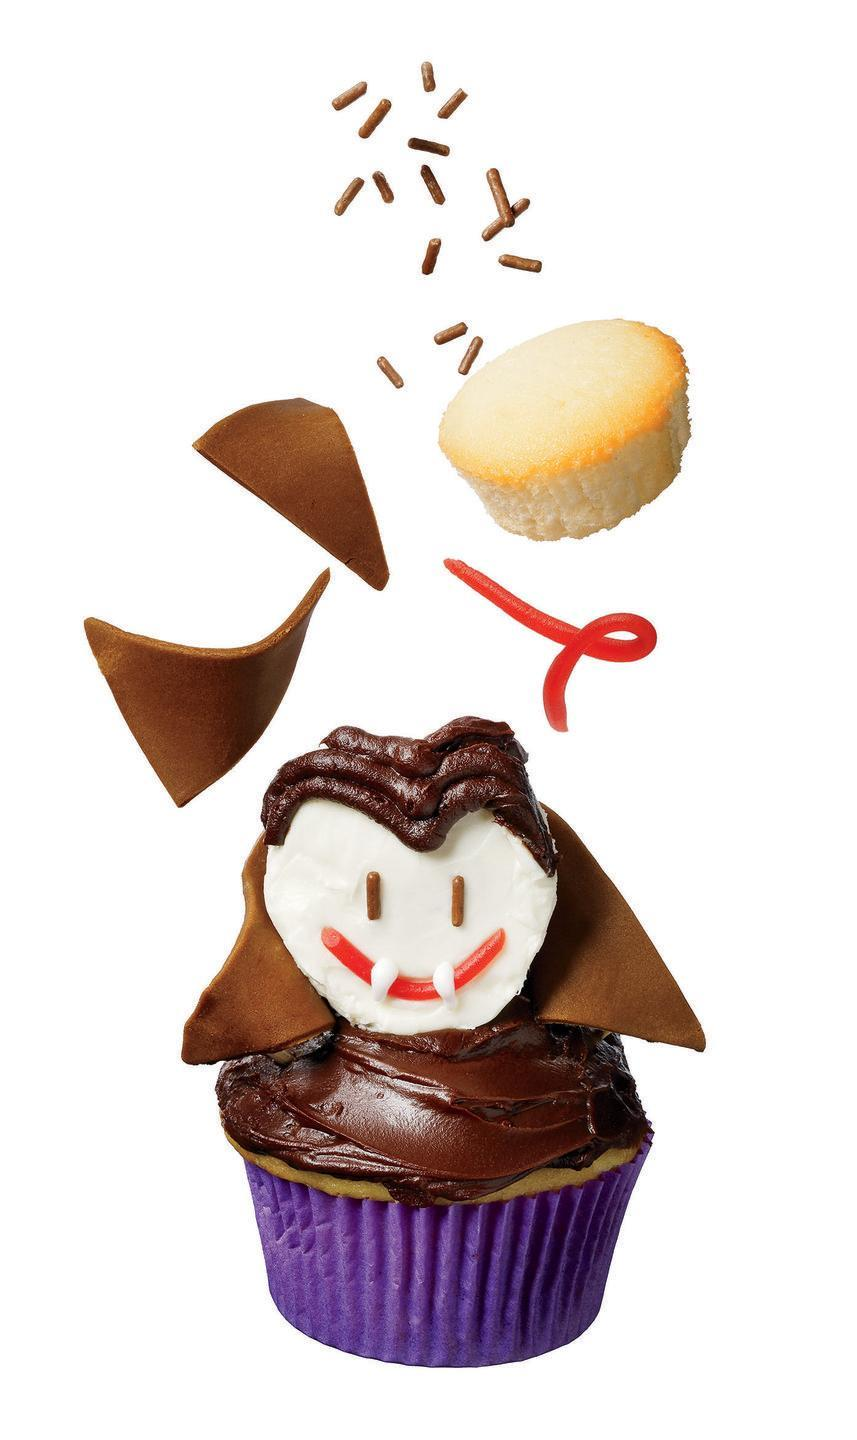 """<p>You'll want to take a bite of this: It's a mini cupcake for the face, and Tootsie Rolls, licorice strings and frosting for Dracula's features.</p><p><em><a href=""""https://www.womansday.com/food-recipes/food-drinks/recipes/a11432/fangtastic-dracula-cupcake-recipe-122728/"""" rel=""""nofollow noopener"""" target=""""_blank"""" data-ylk=""""slk:Get the recipe from Woman's Day »"""" class=""""link rapid-noclick-resp"""">Get the recipe from Woman's Day »</a></em></p>"""